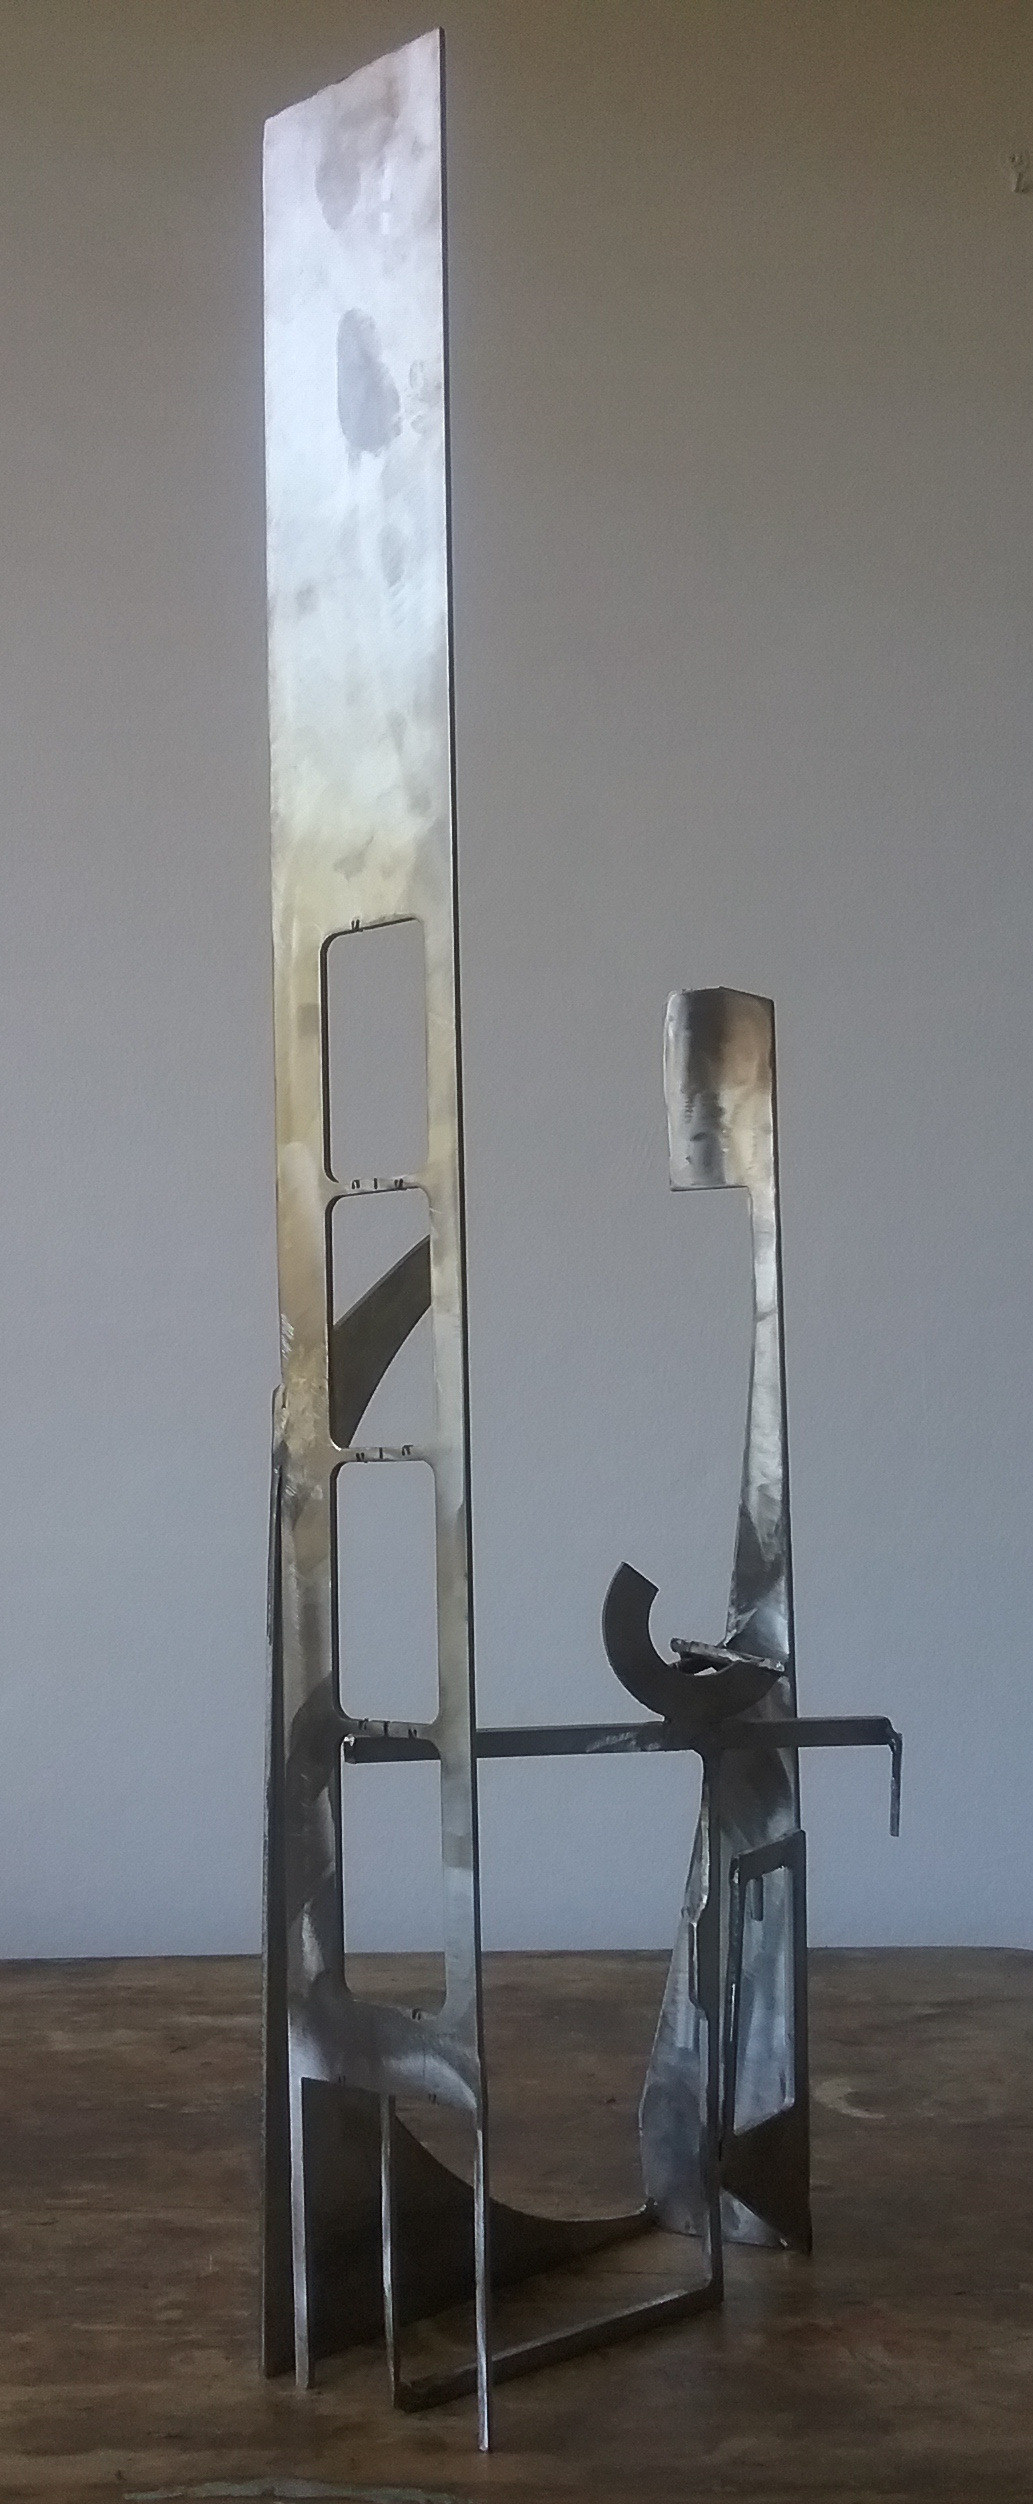 Paul bacon sculpture landscape figure steel stainless abstract impressioism